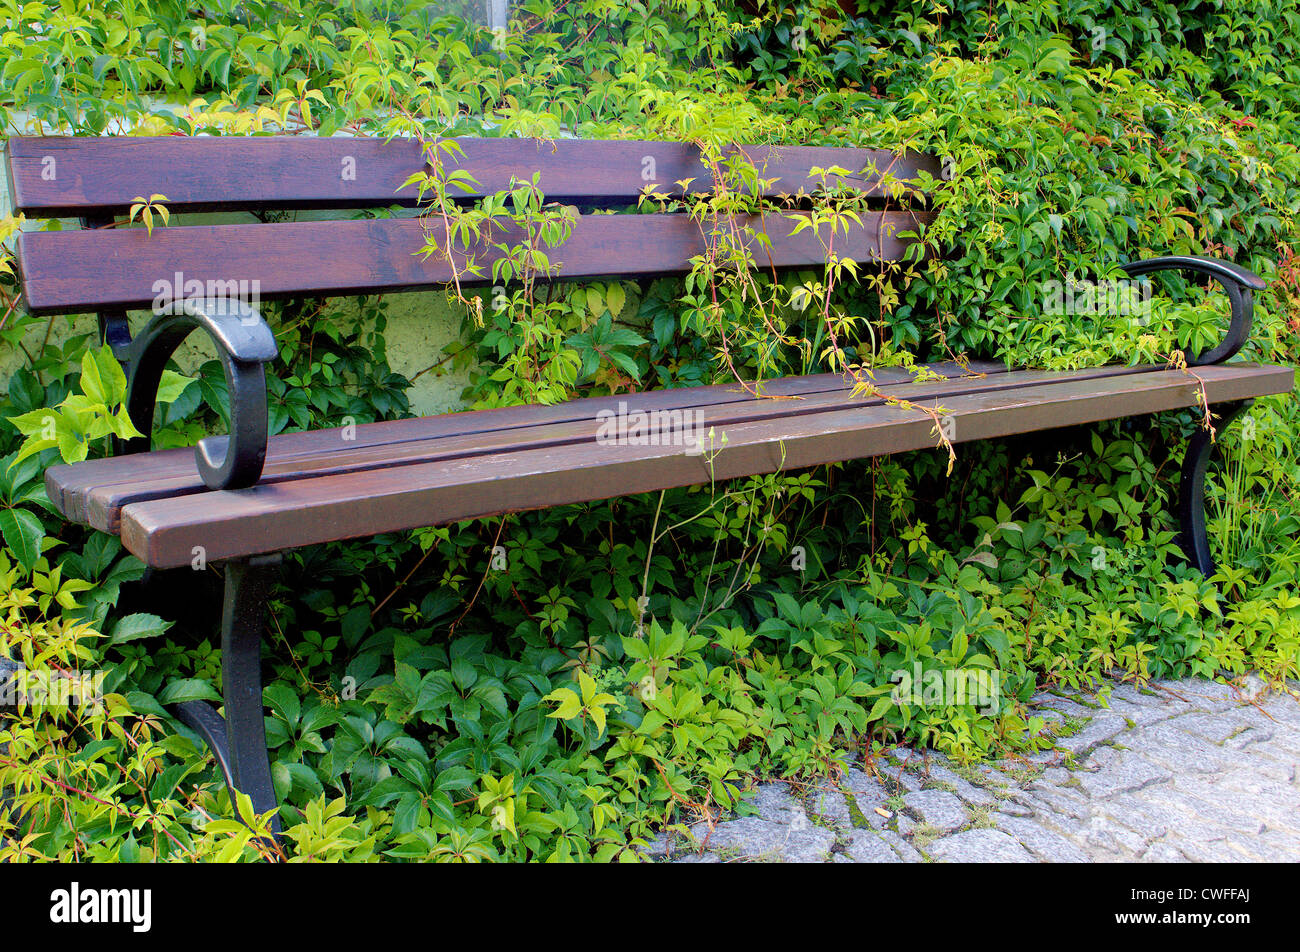 The bench in the green creeper not haunted forgotten - Stock Image